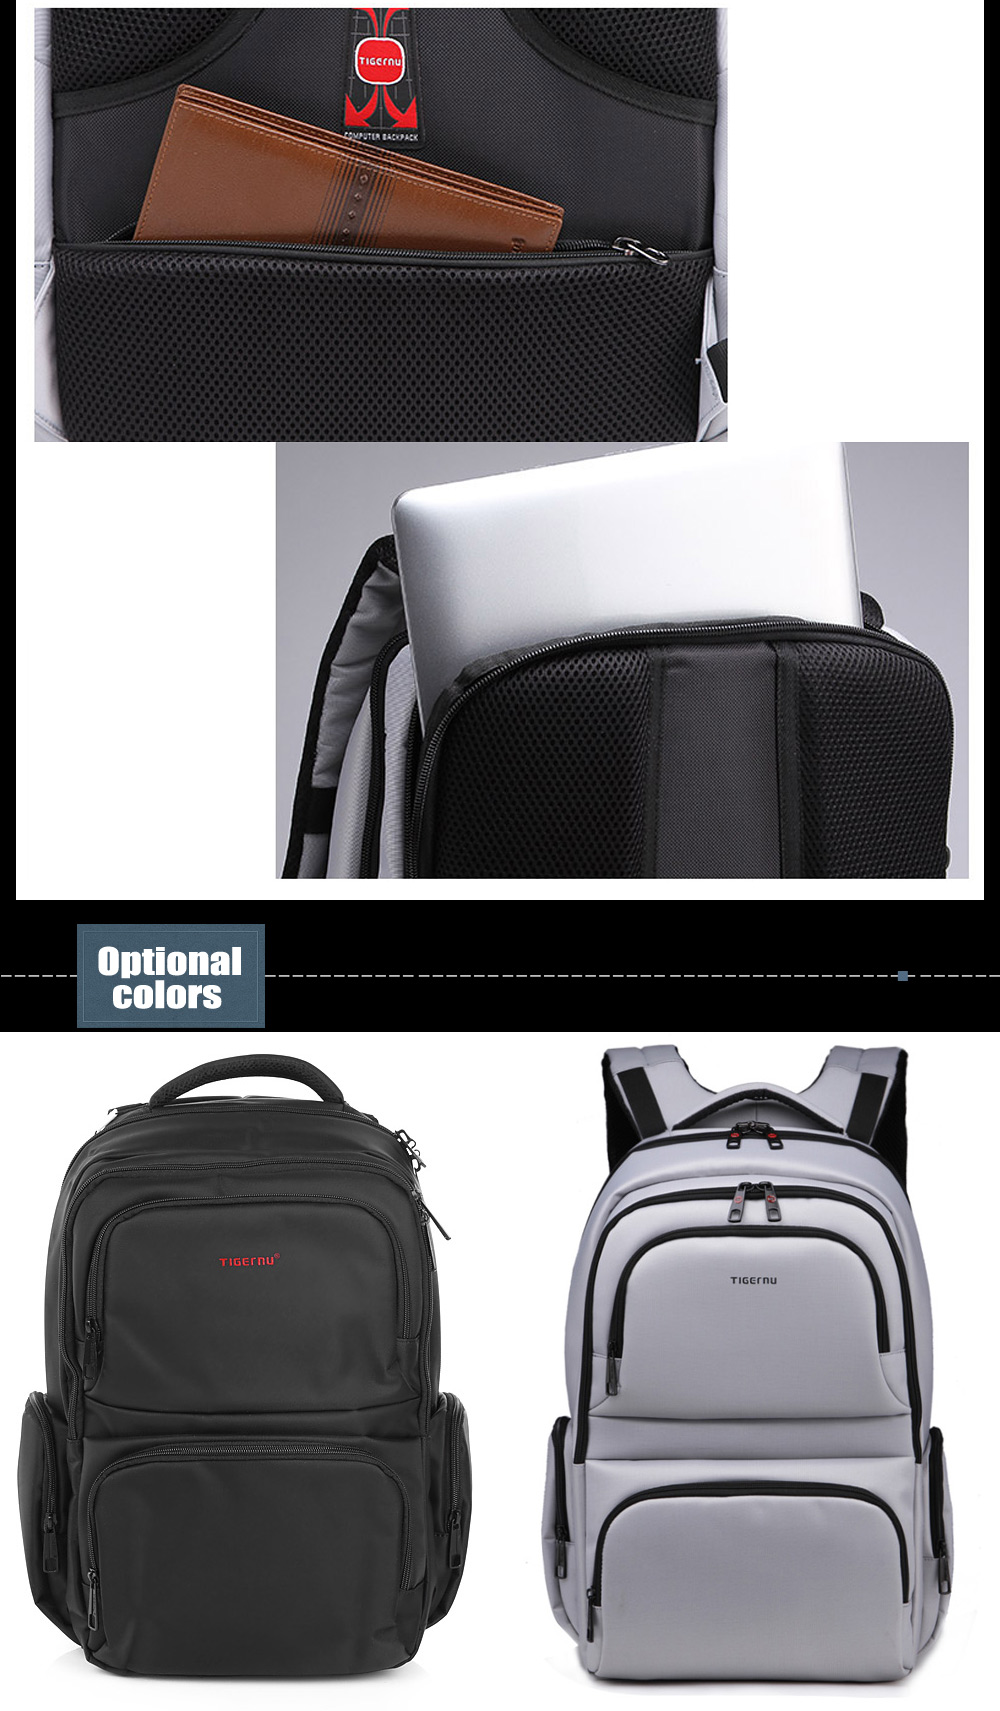 Tigernu T - B3140 Water-resistant Nylon 20L Business Backpack Bag for 14 inch Laptop